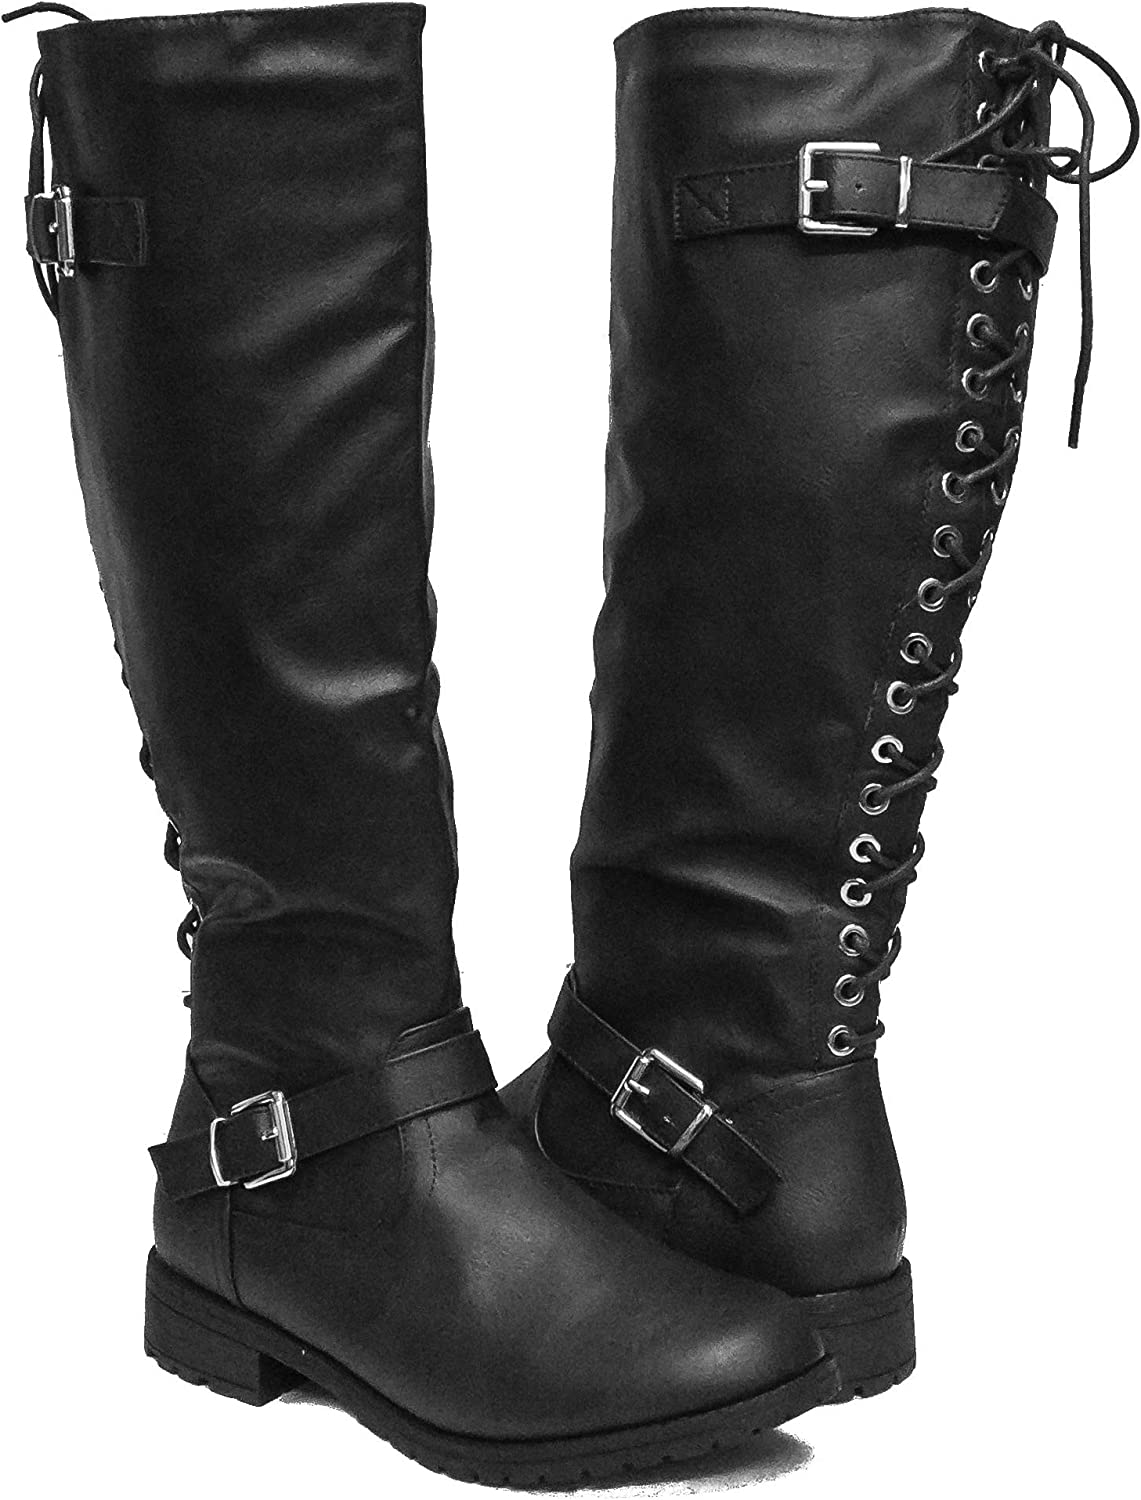 Bellmora Women's Gliding-1 Faux Leather Back Lace-Up Riding Boots - by Top Moda